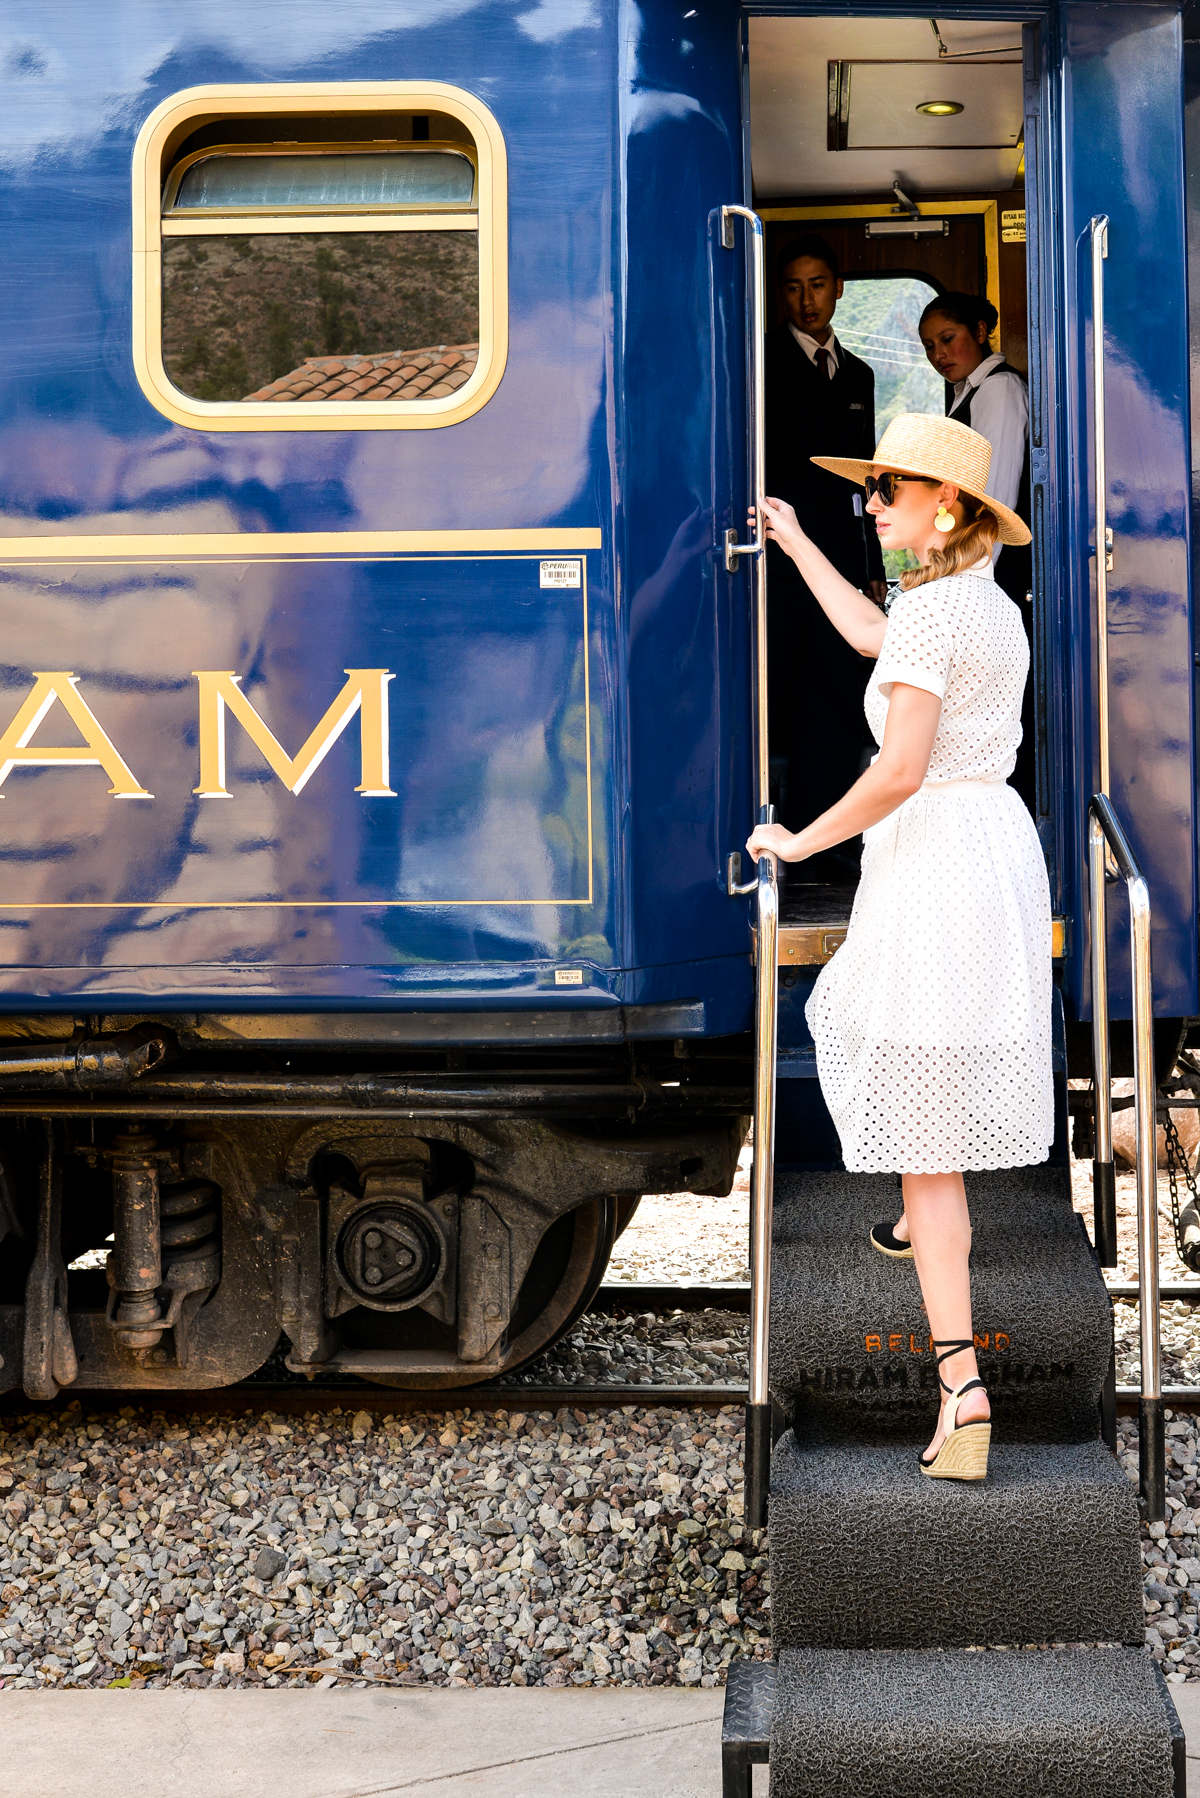 Stacie Flinner x Belmond Hiram Bingham Train-5